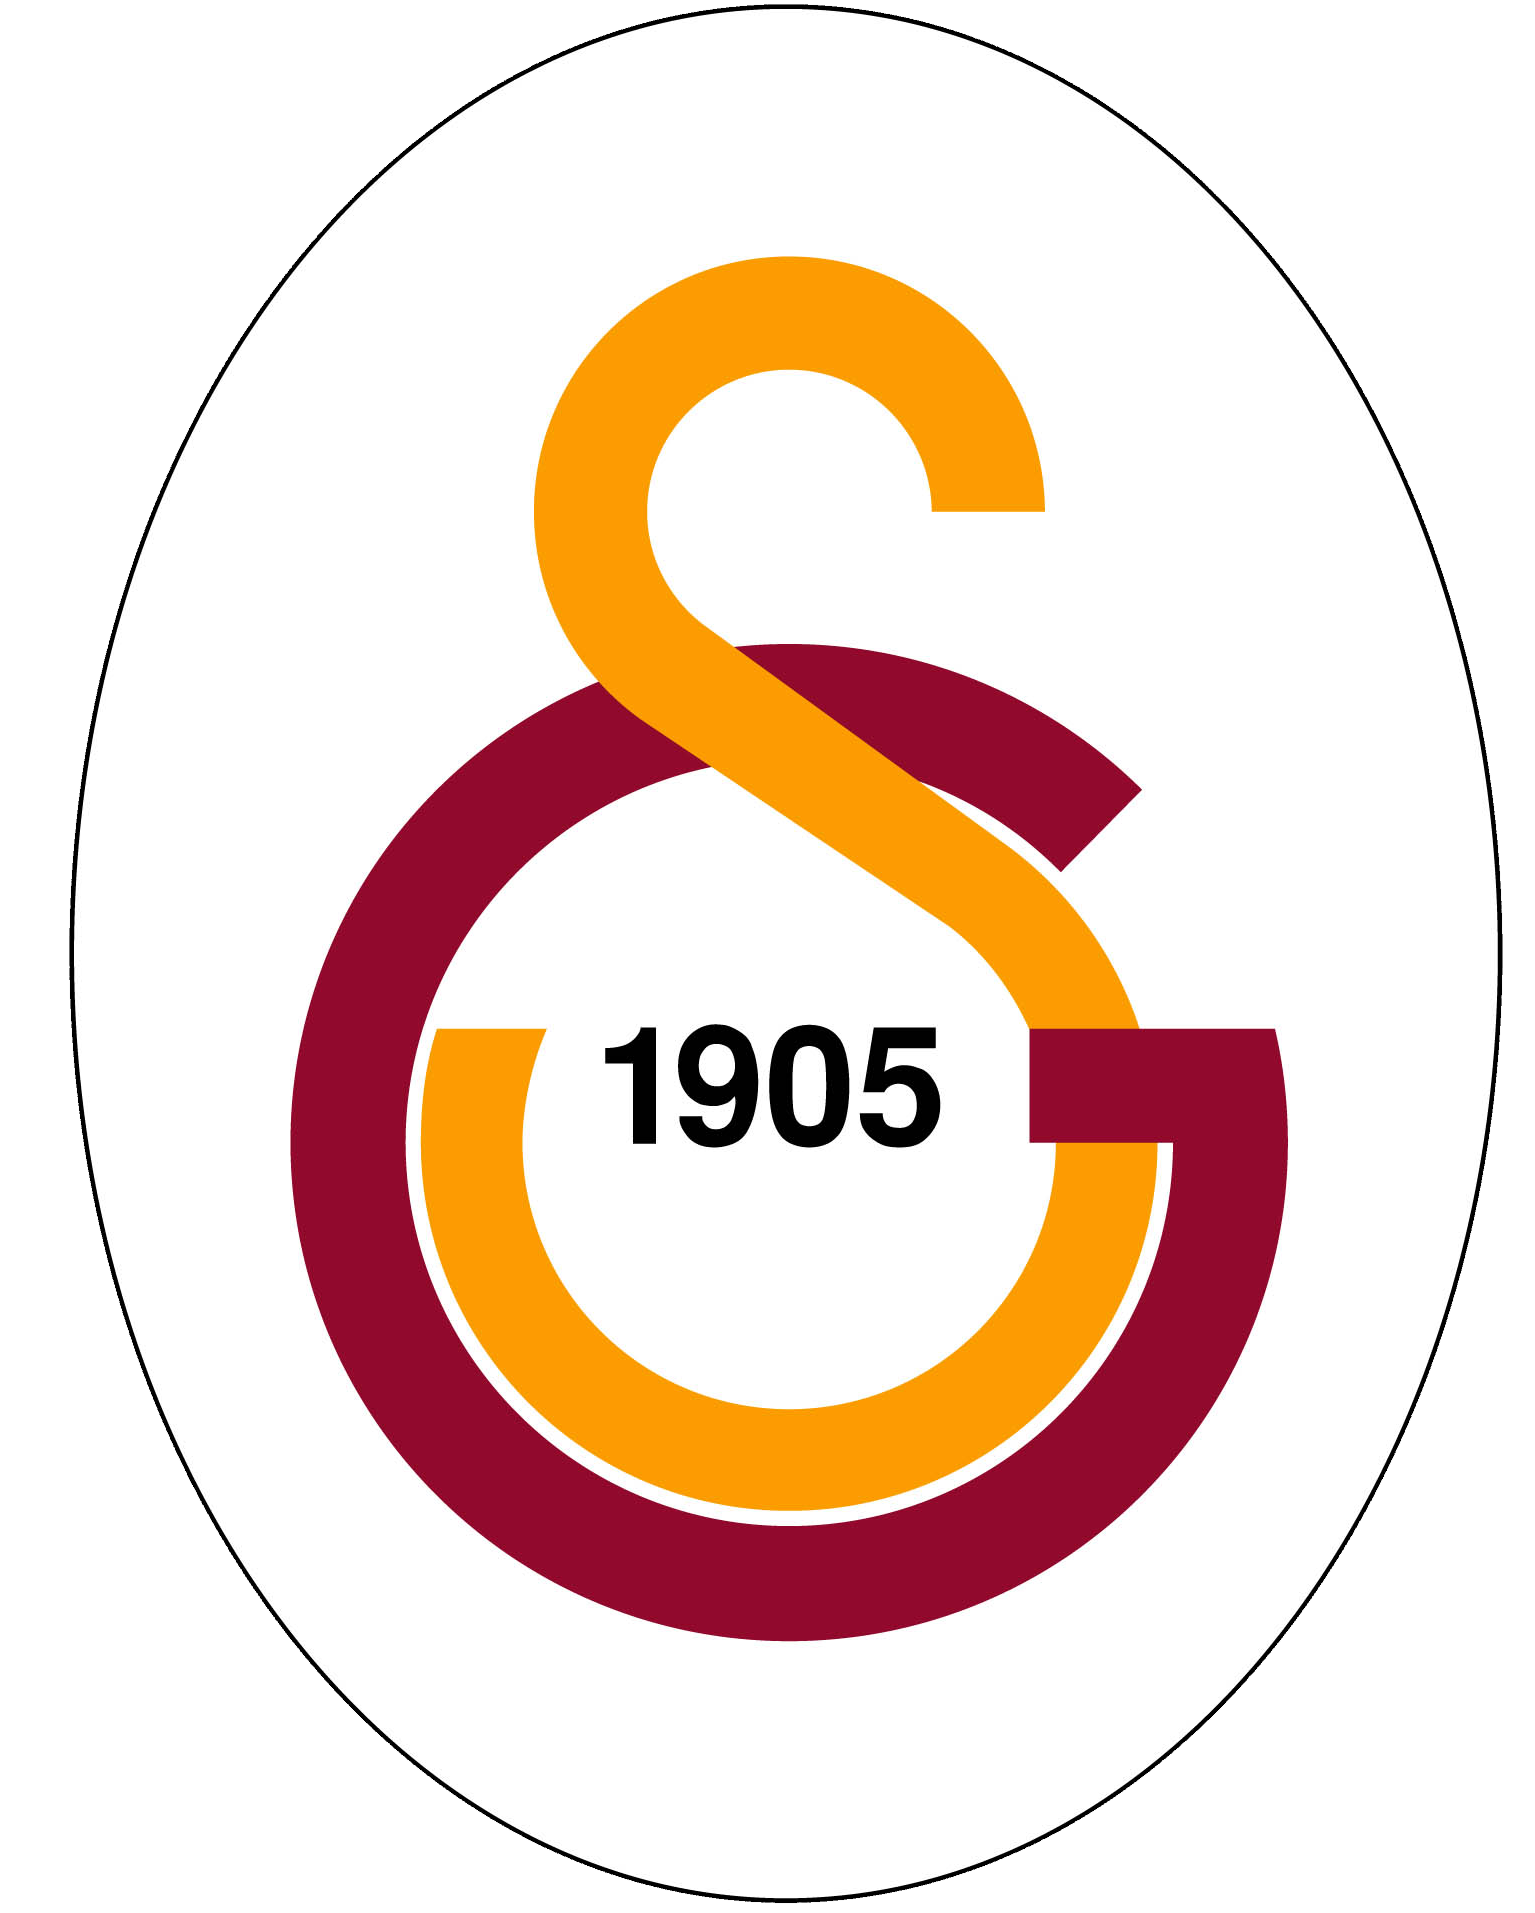 File:Galatasaray Sports Club Logo.png.